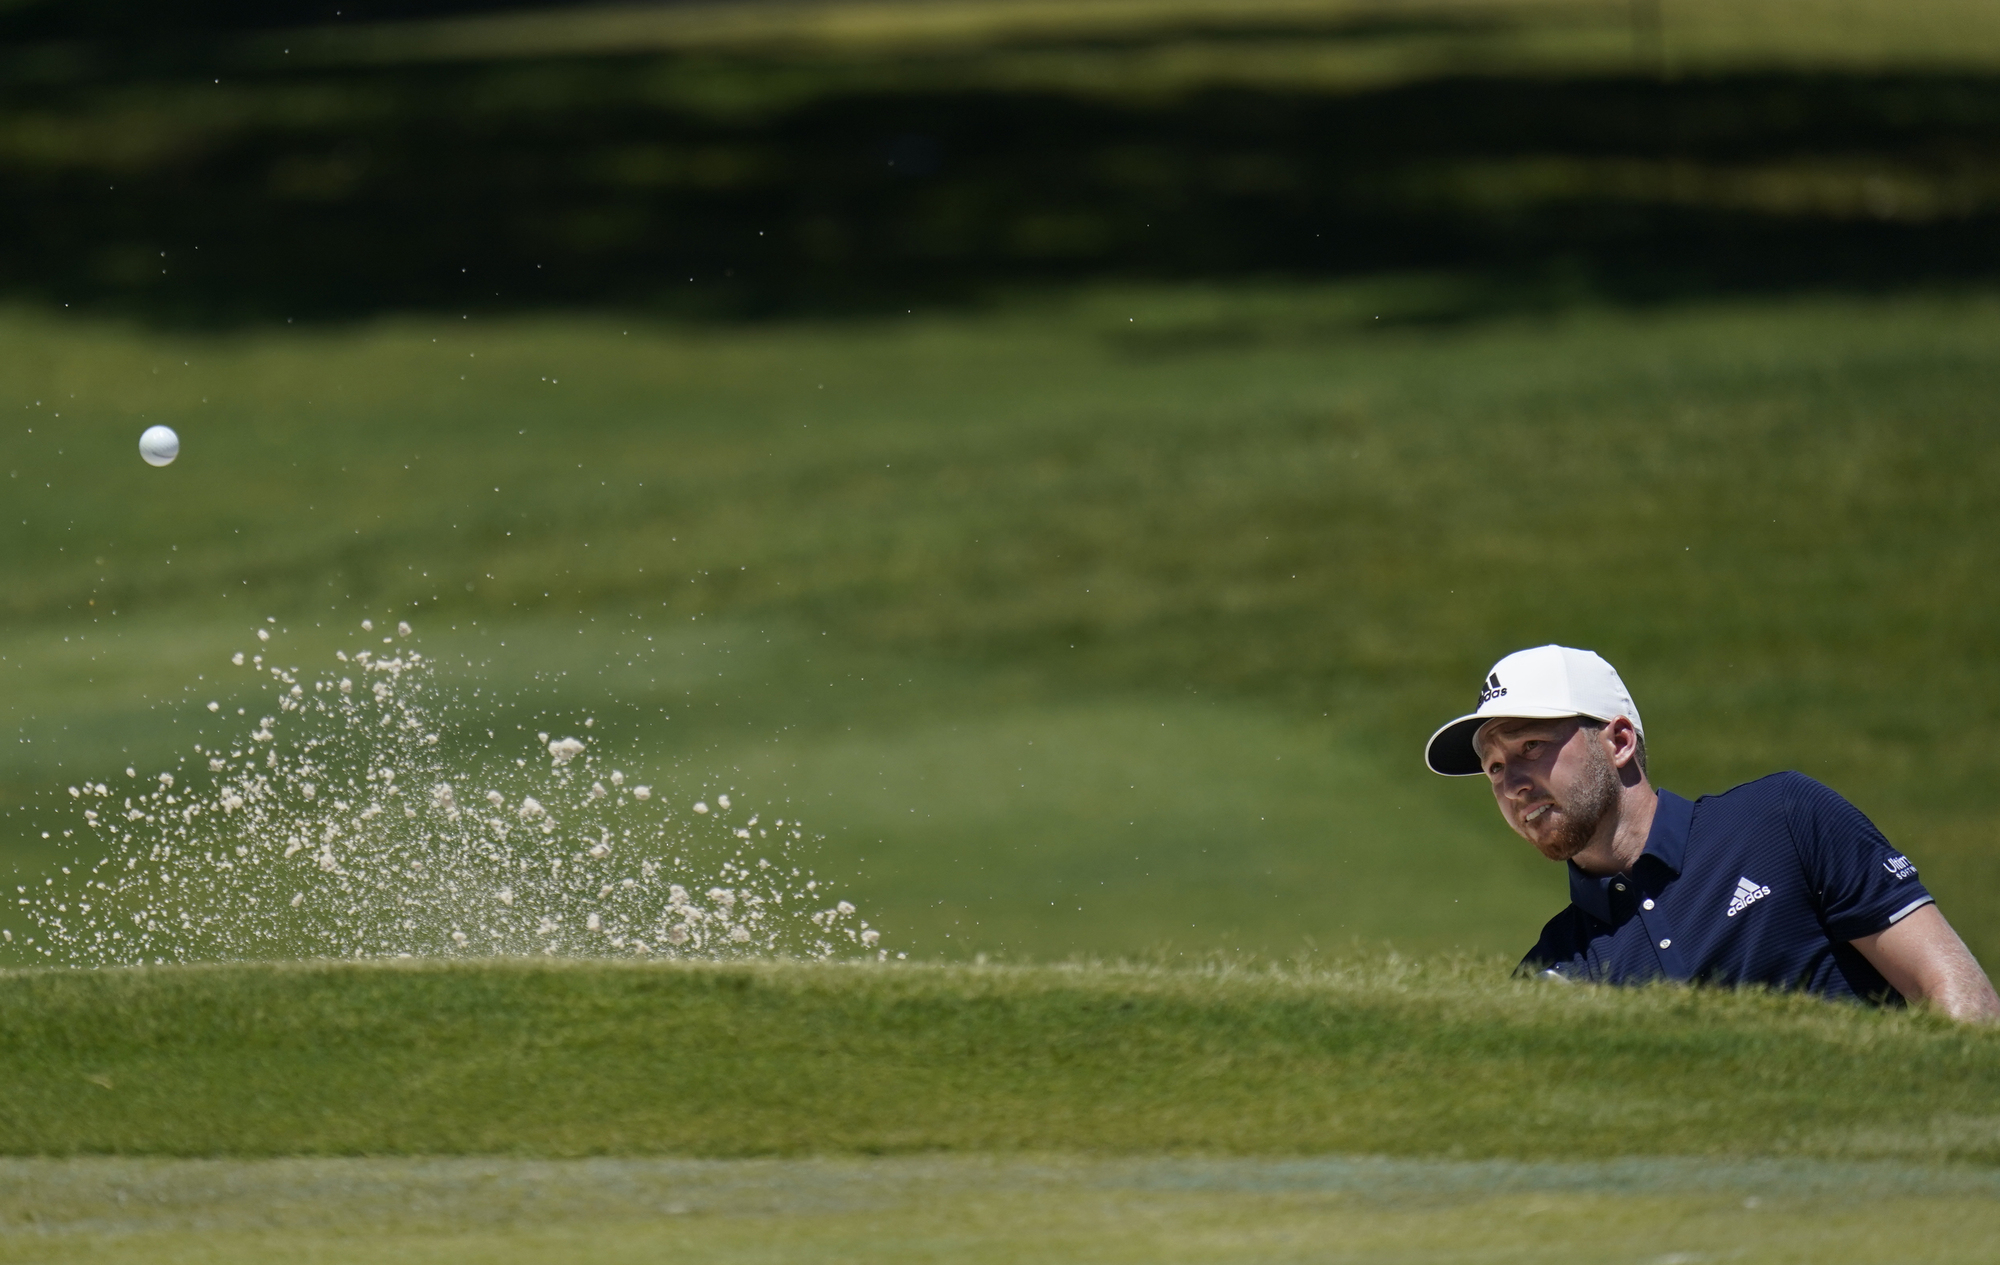 Daniel Berger during the final round of the Charles Schwab Challenge at the Colonial Country Club in Fort Worth on June 14.